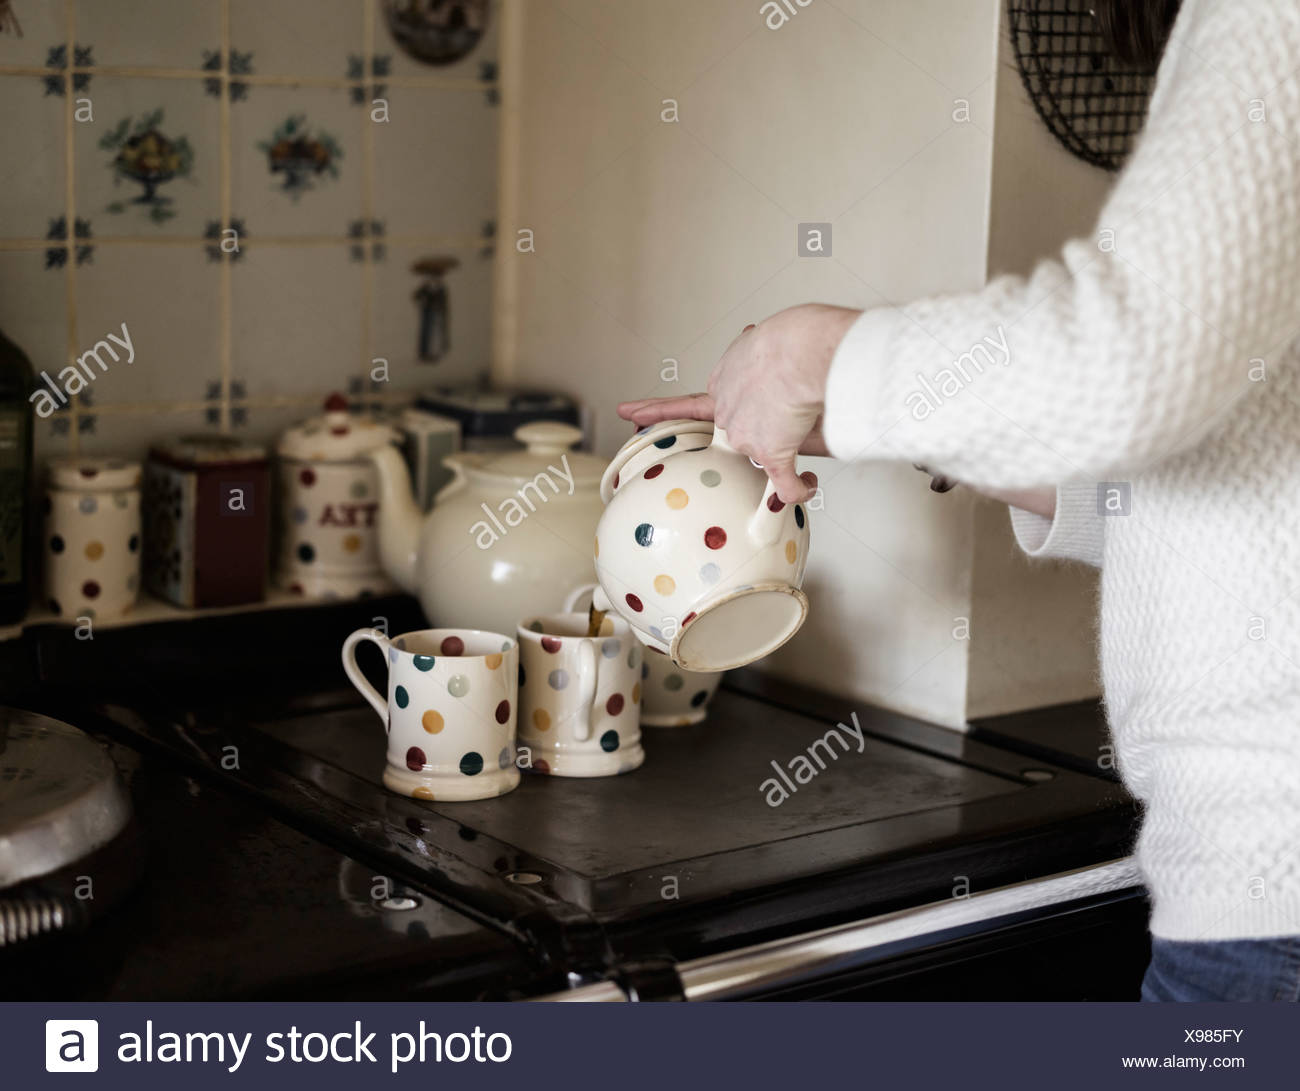 A woman pouring tea by a range cooker. Using decorative china. - Stock Image